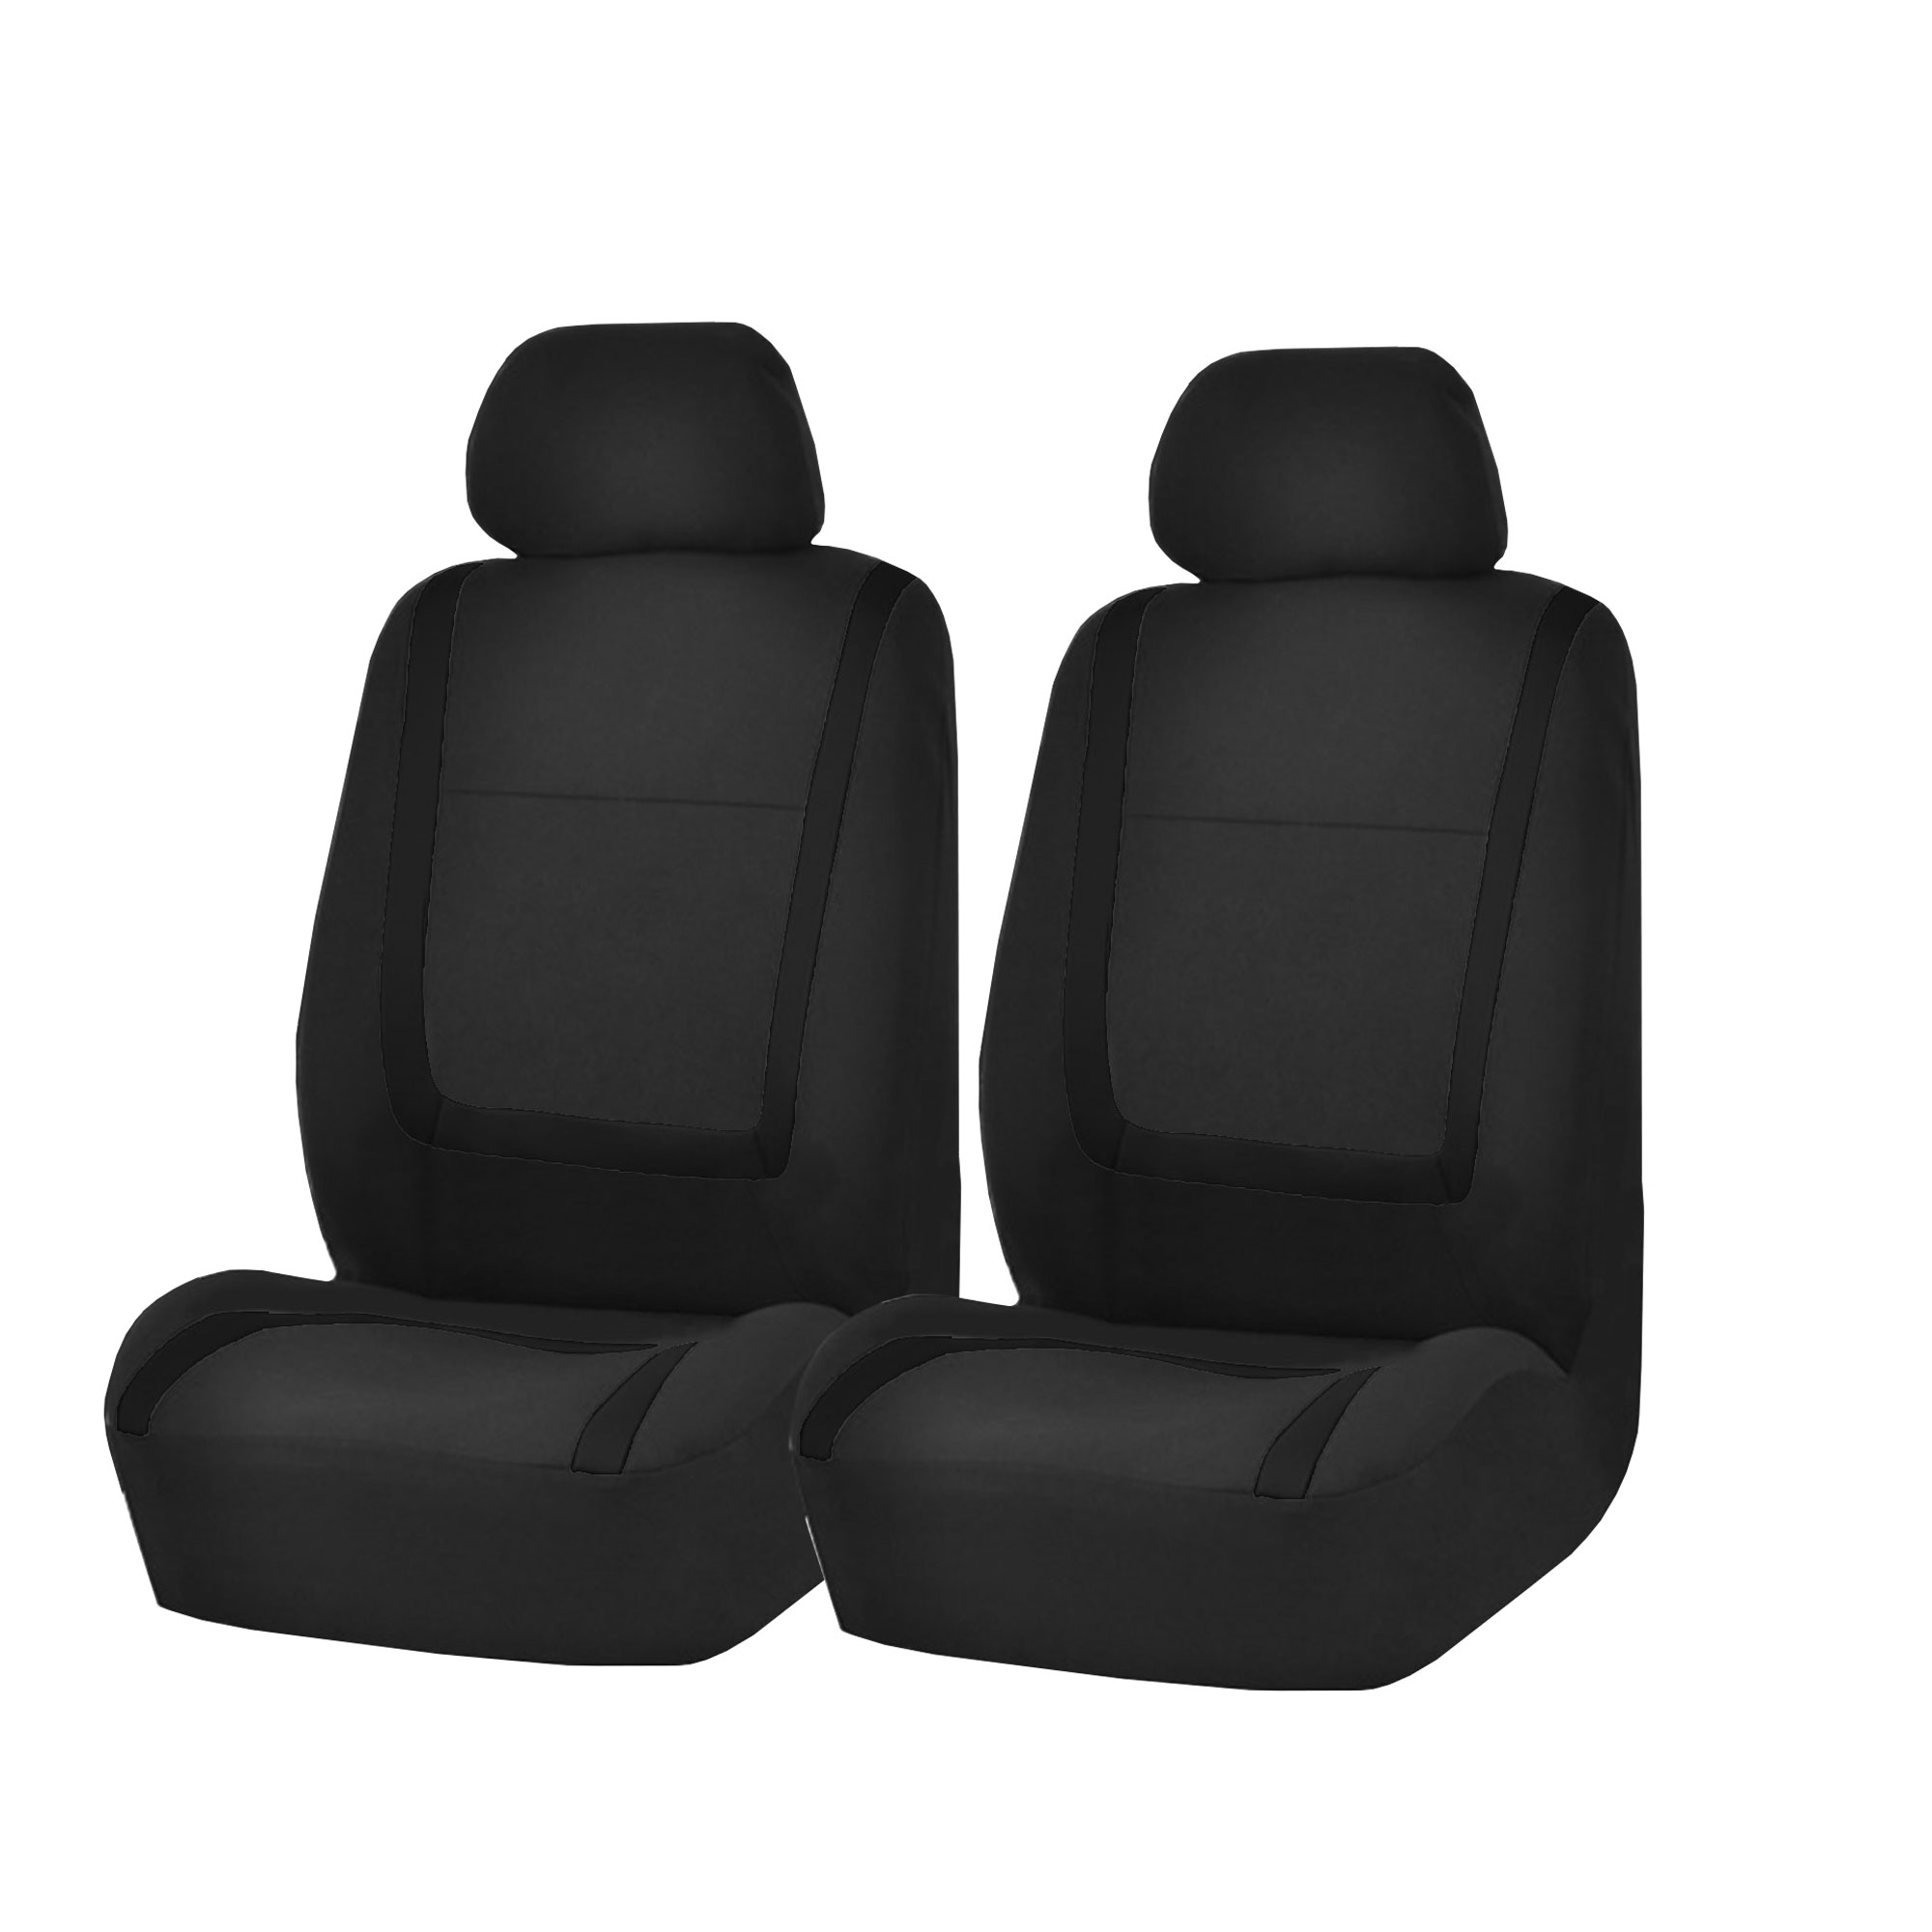 Front Car Seat Covers Black Set For Auto W Head Rests Two